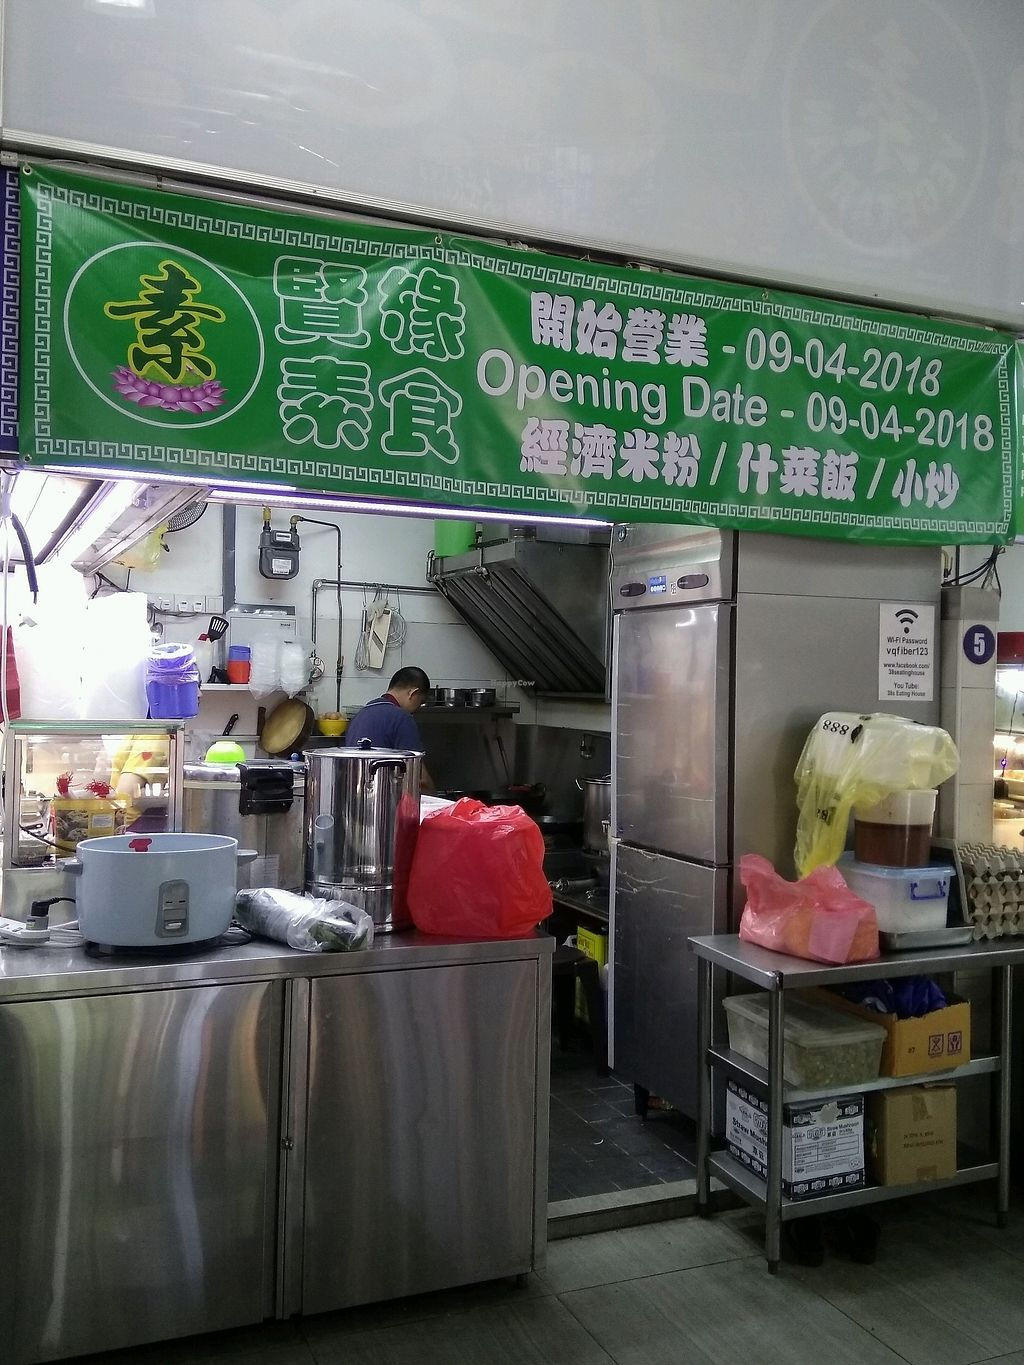 """Photo of Xian Yuan Vegetarian  by <a href=""""/members/profile/AdelOng"""">AdelOng</a> <br/>Stall side view <br/> April 13, 2018  - <a href='/contact/abuse/image/117607/385422'>Report</a>"""